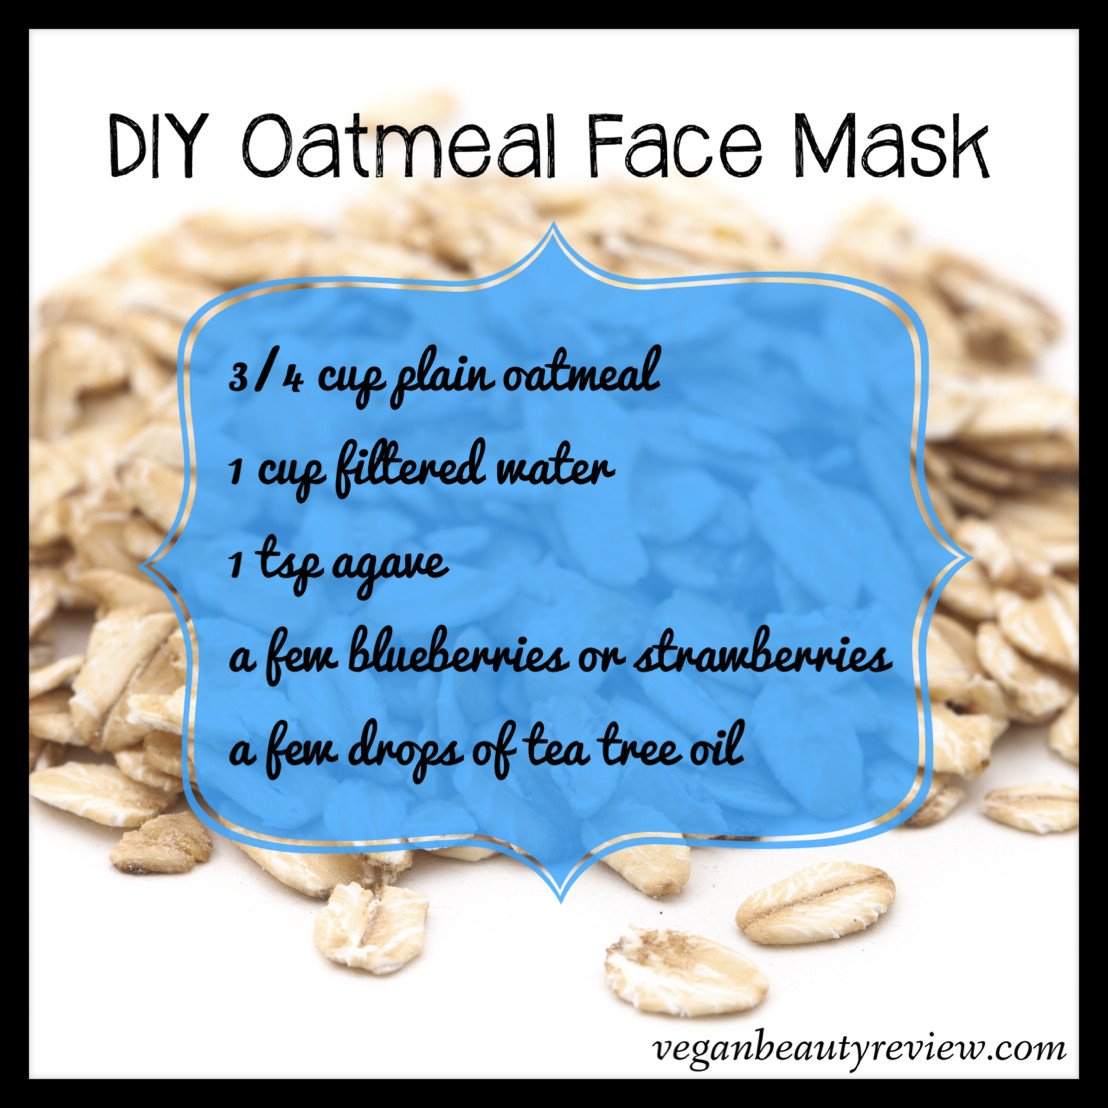 Best ideas about Oatmeal Mask DIY . Save or Pin DIY Oatmeal Face Mask Vegan Beauty Review Now.